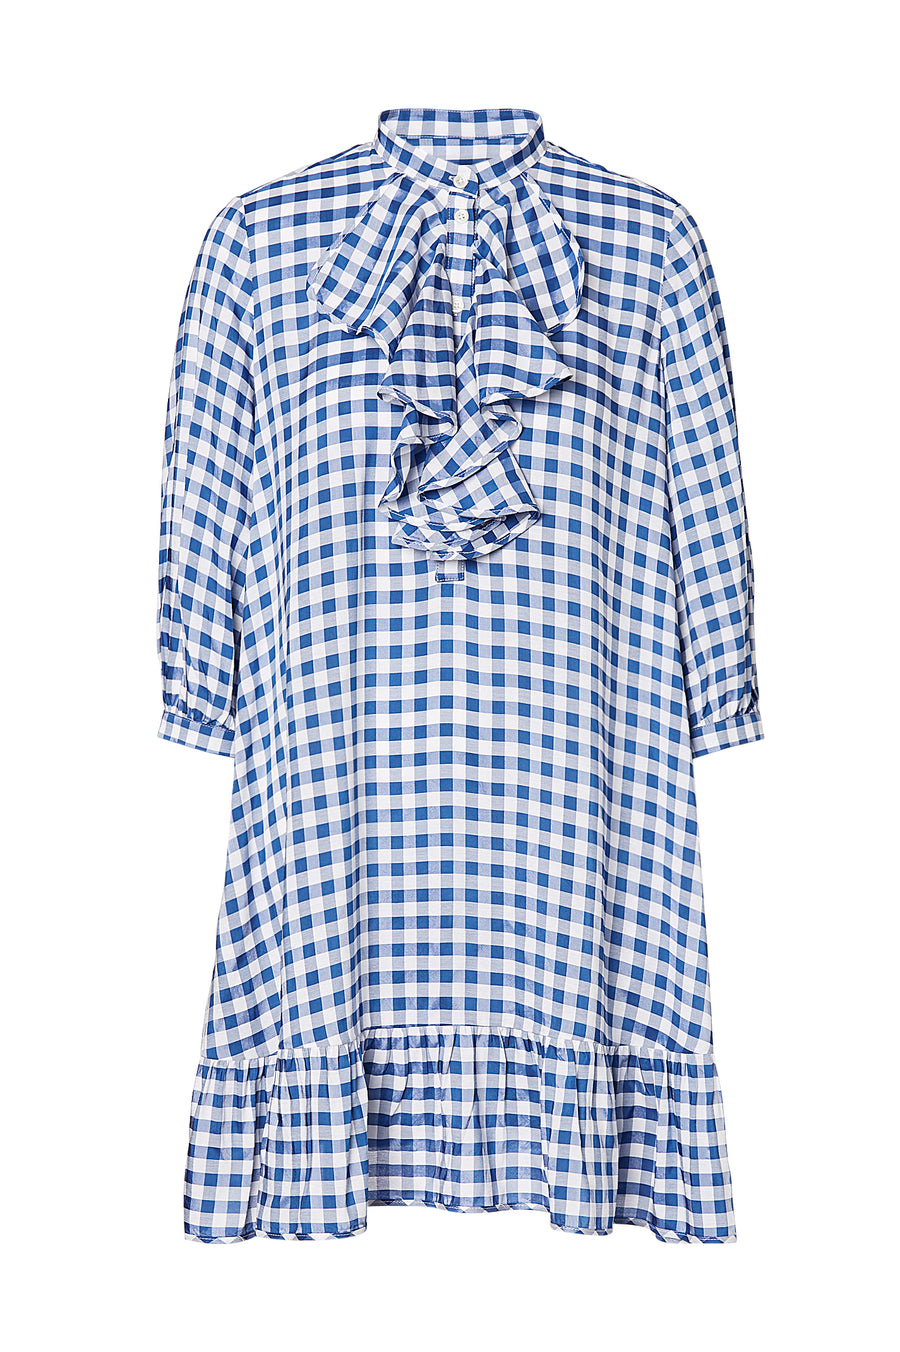 GINGHAM RUFFLE DRESS, BLUE color